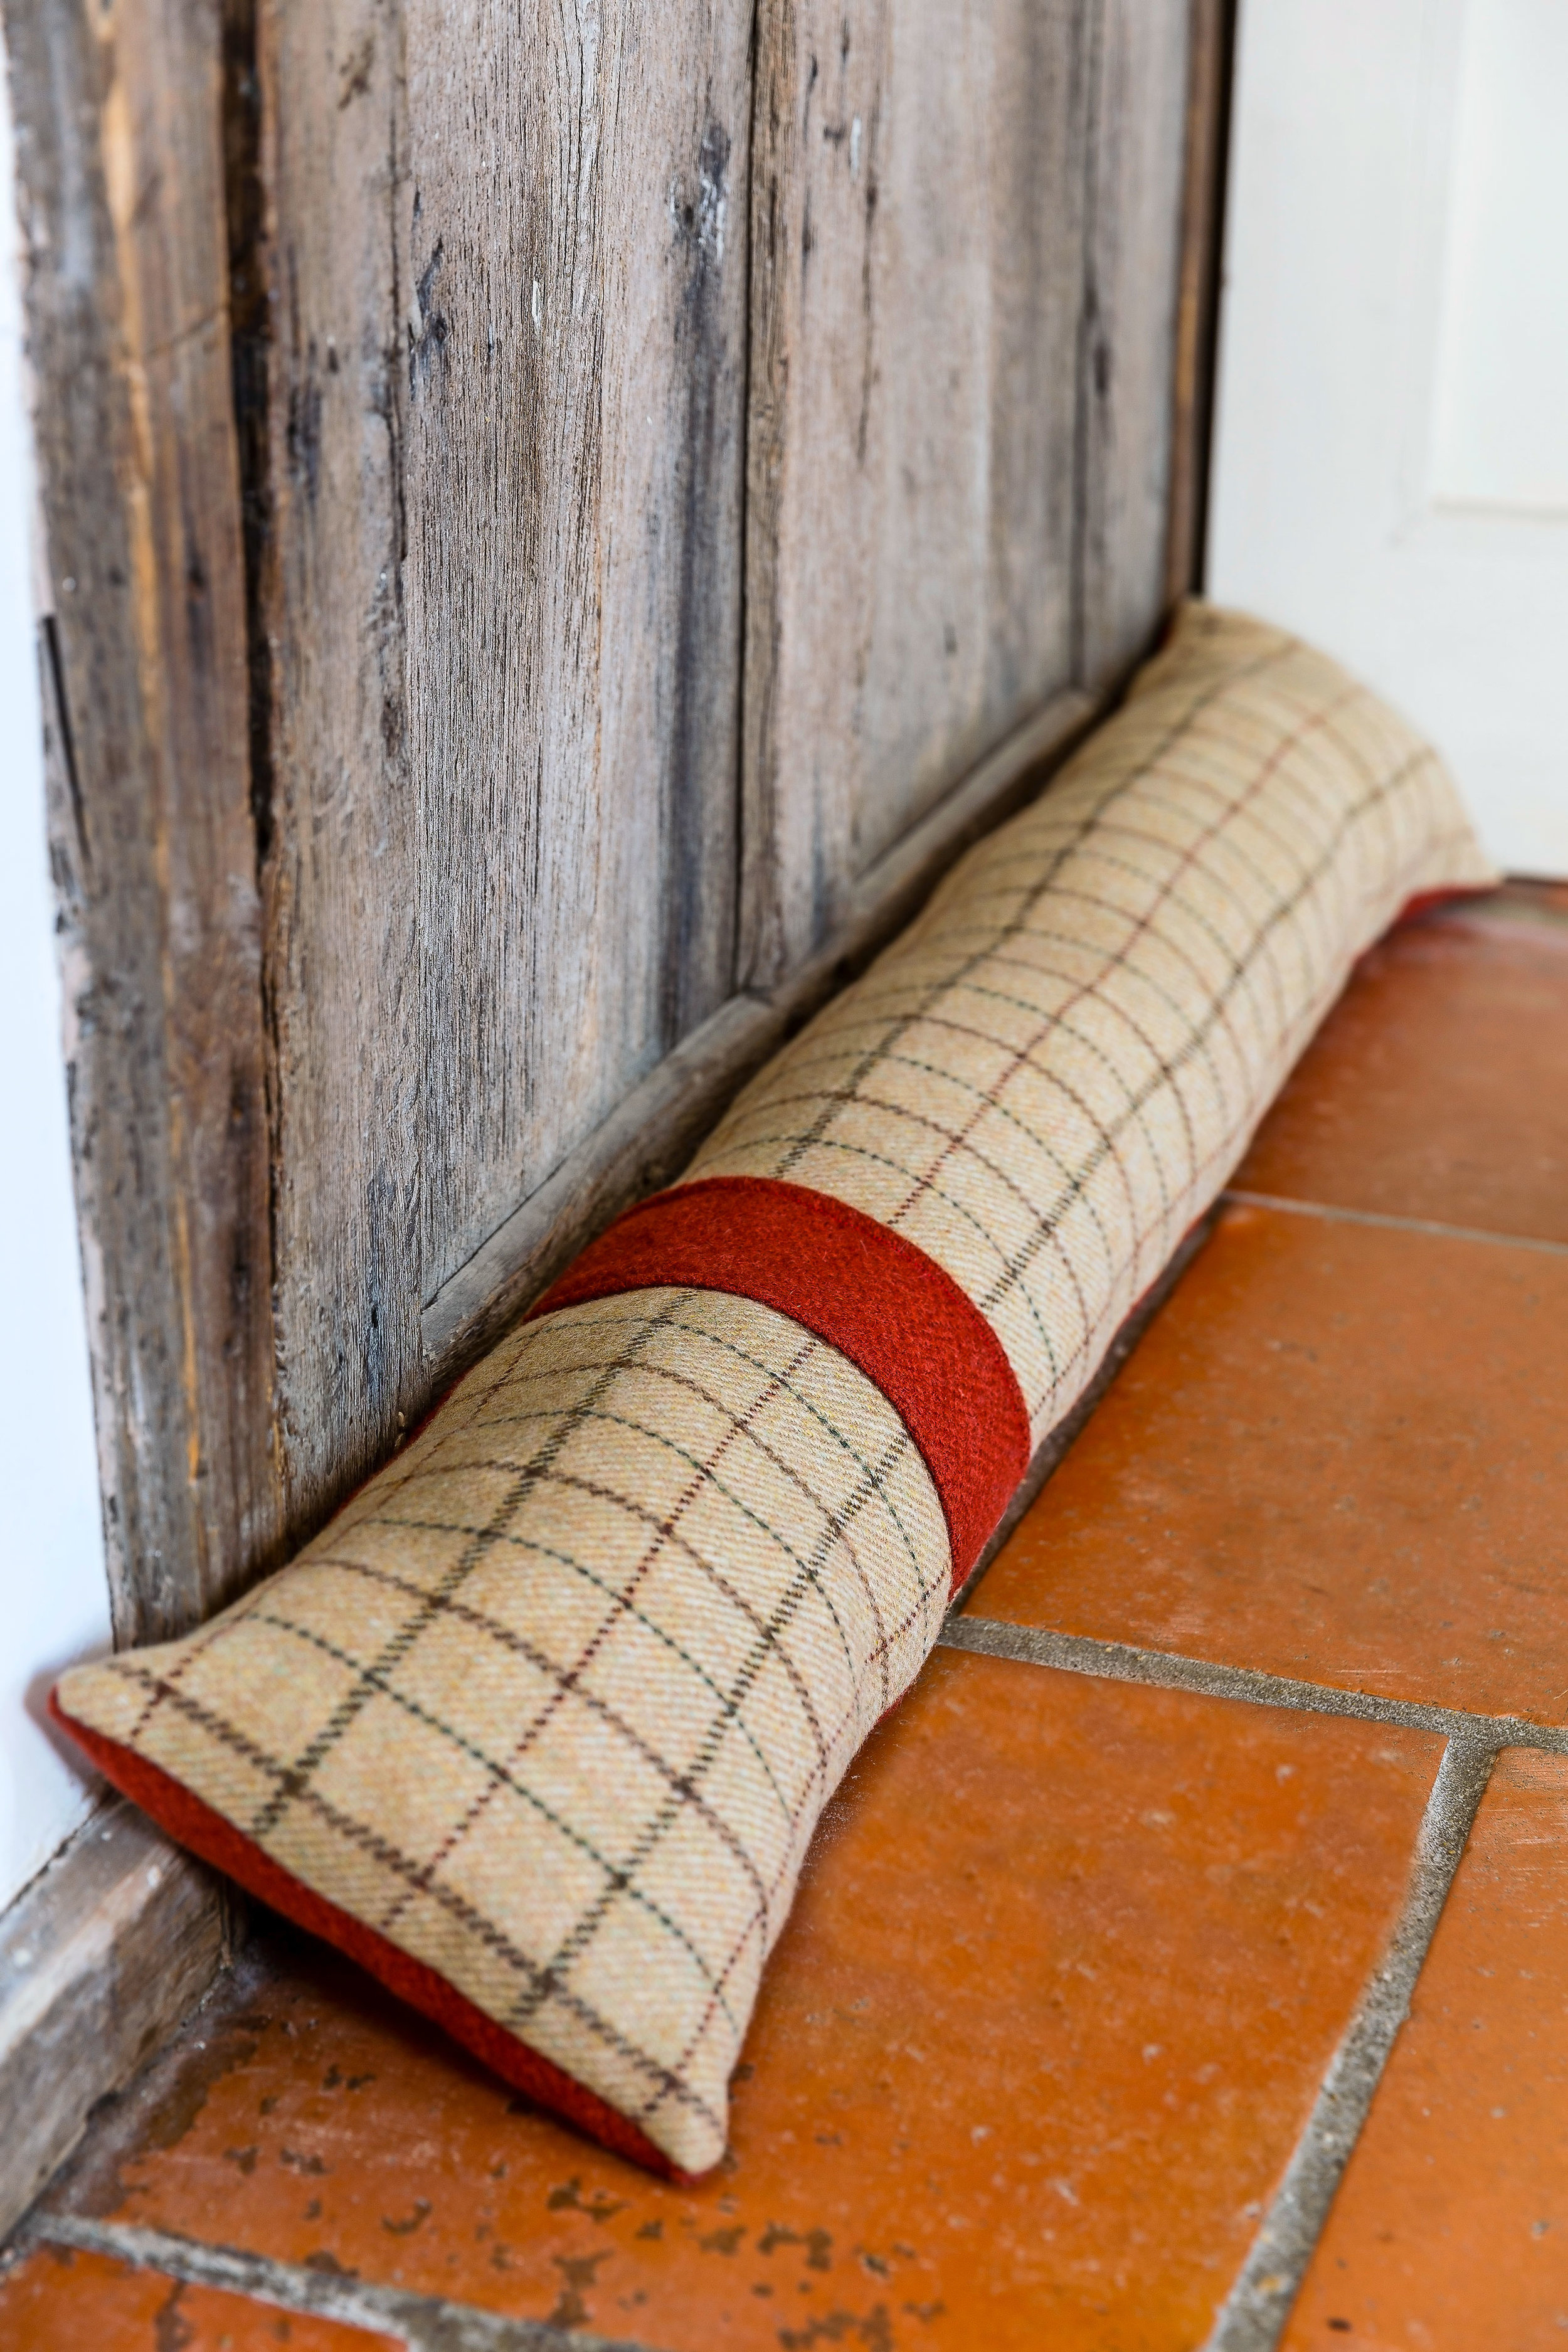 Craft-project-LandScape-magazine-draught-excluder.jpg